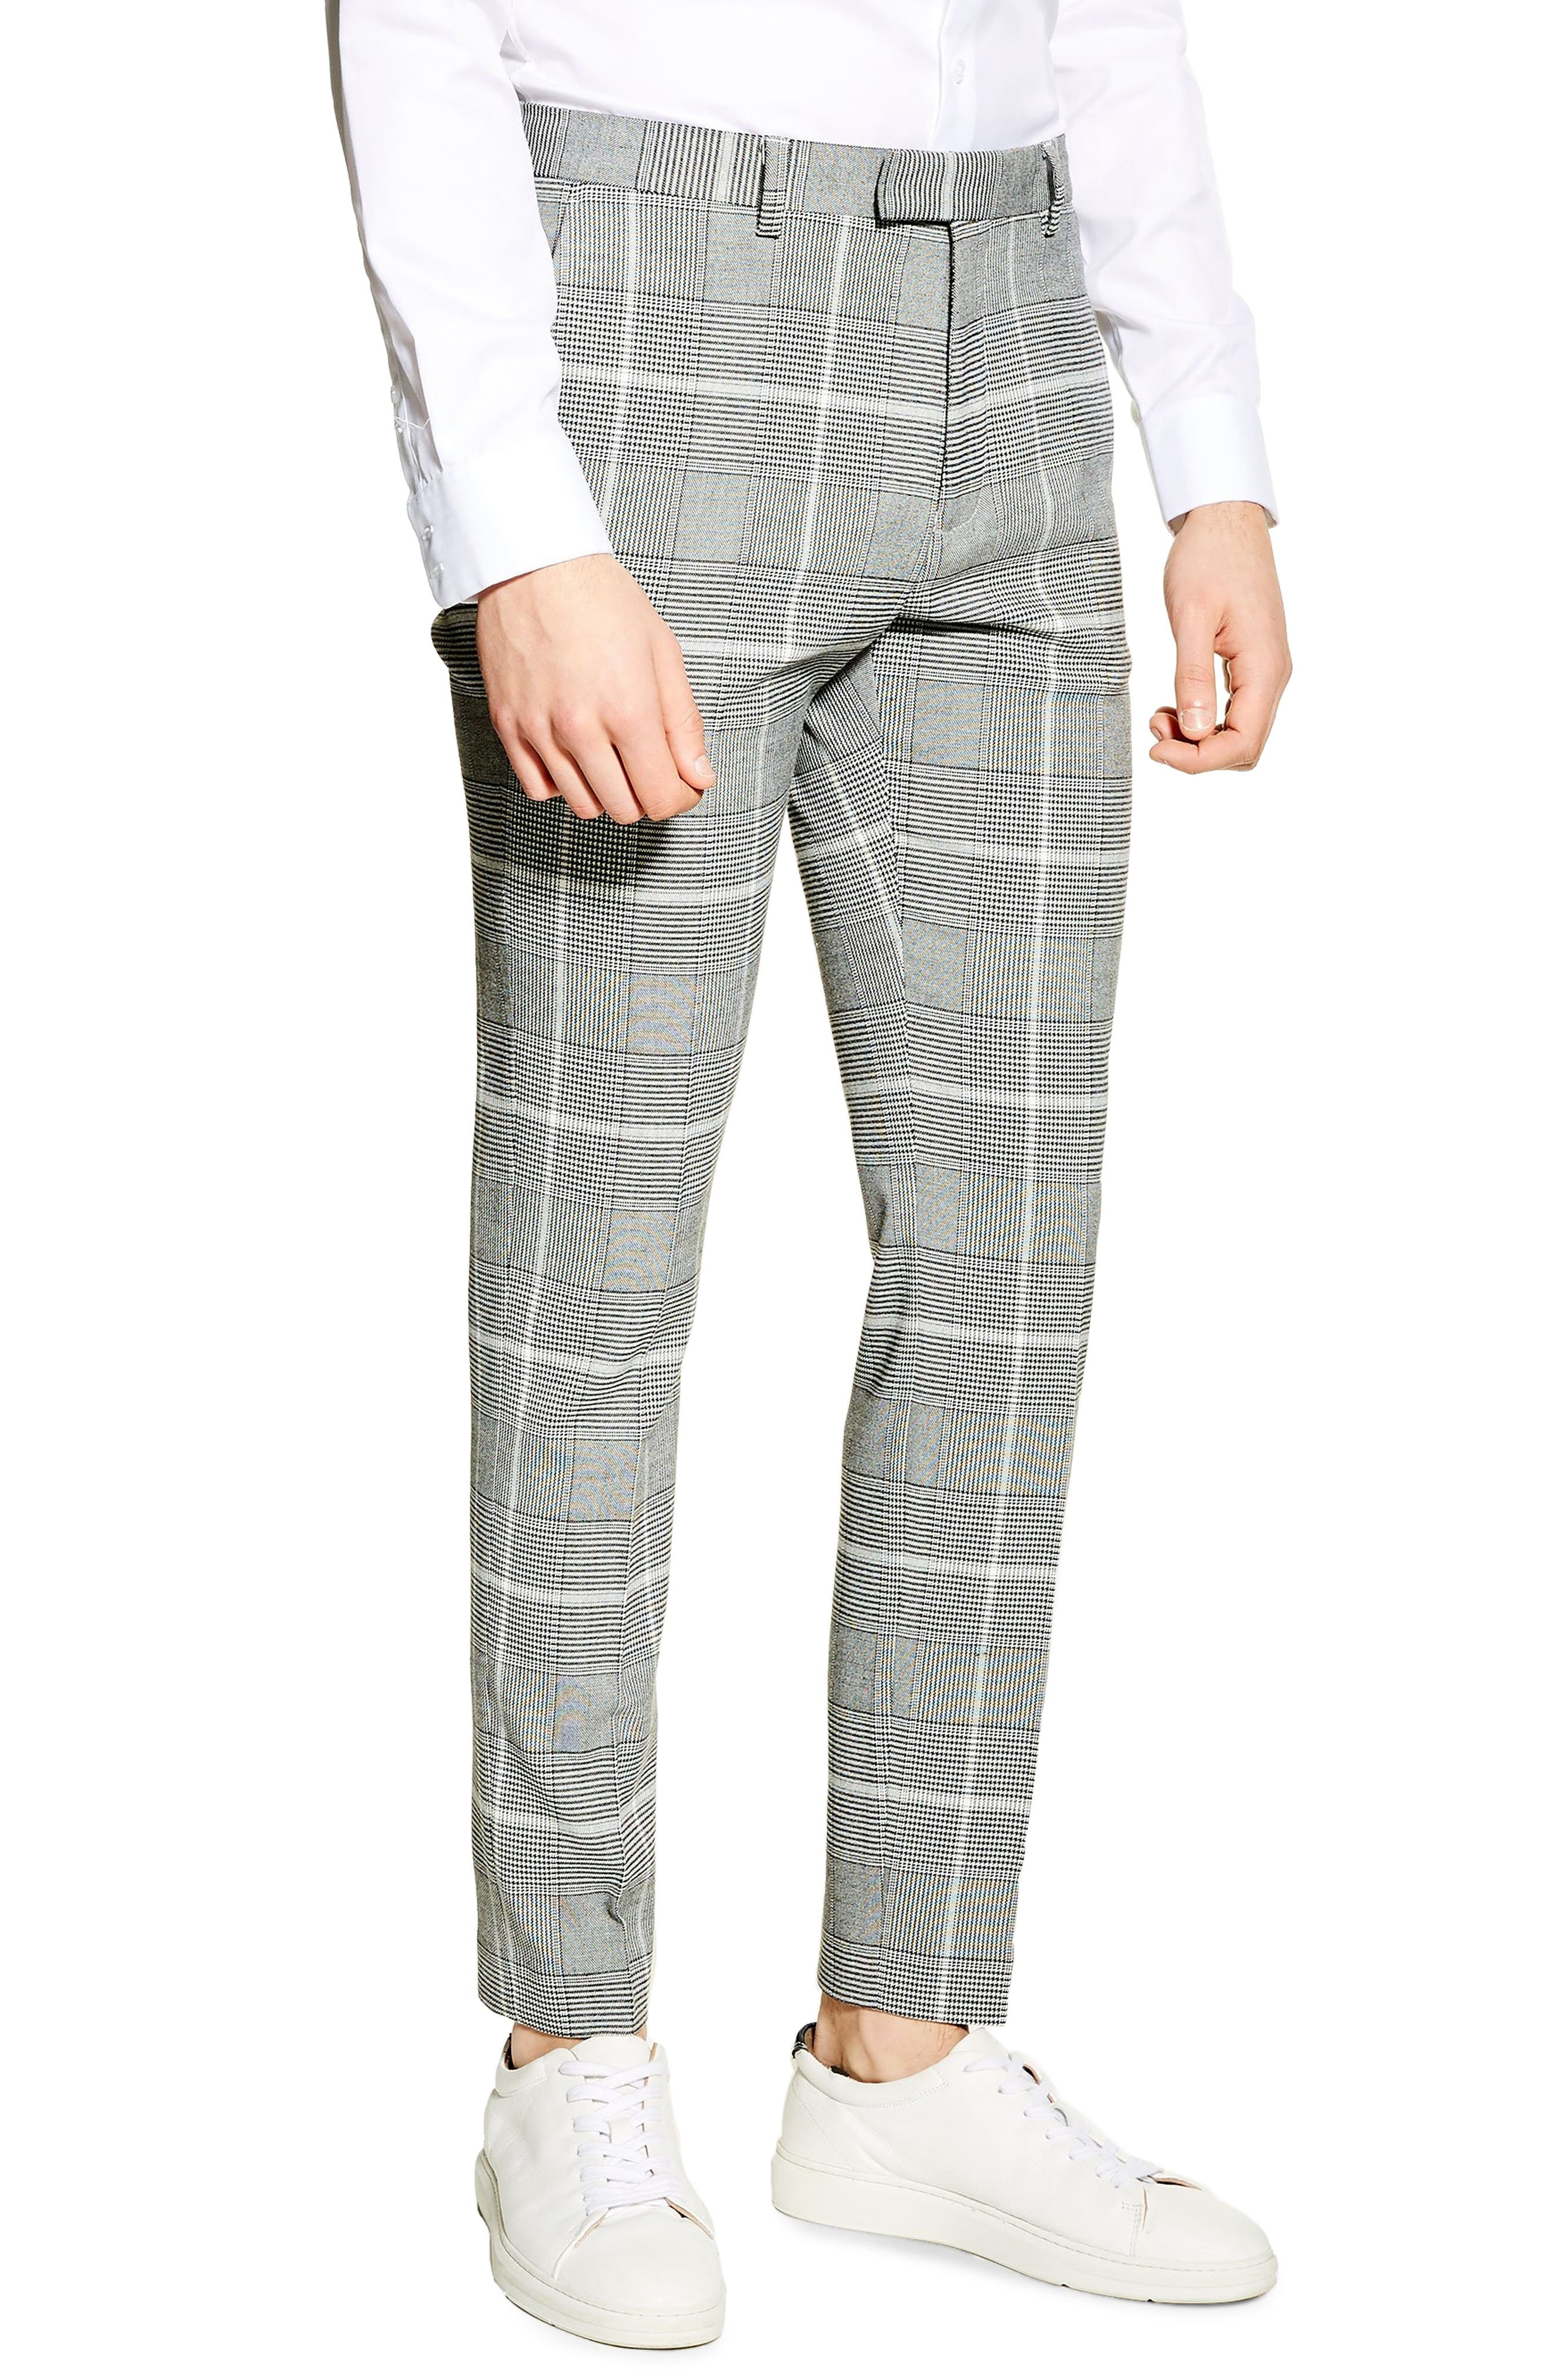 TOPMAN Skinny Fit Check Trousers, Main, color, 020